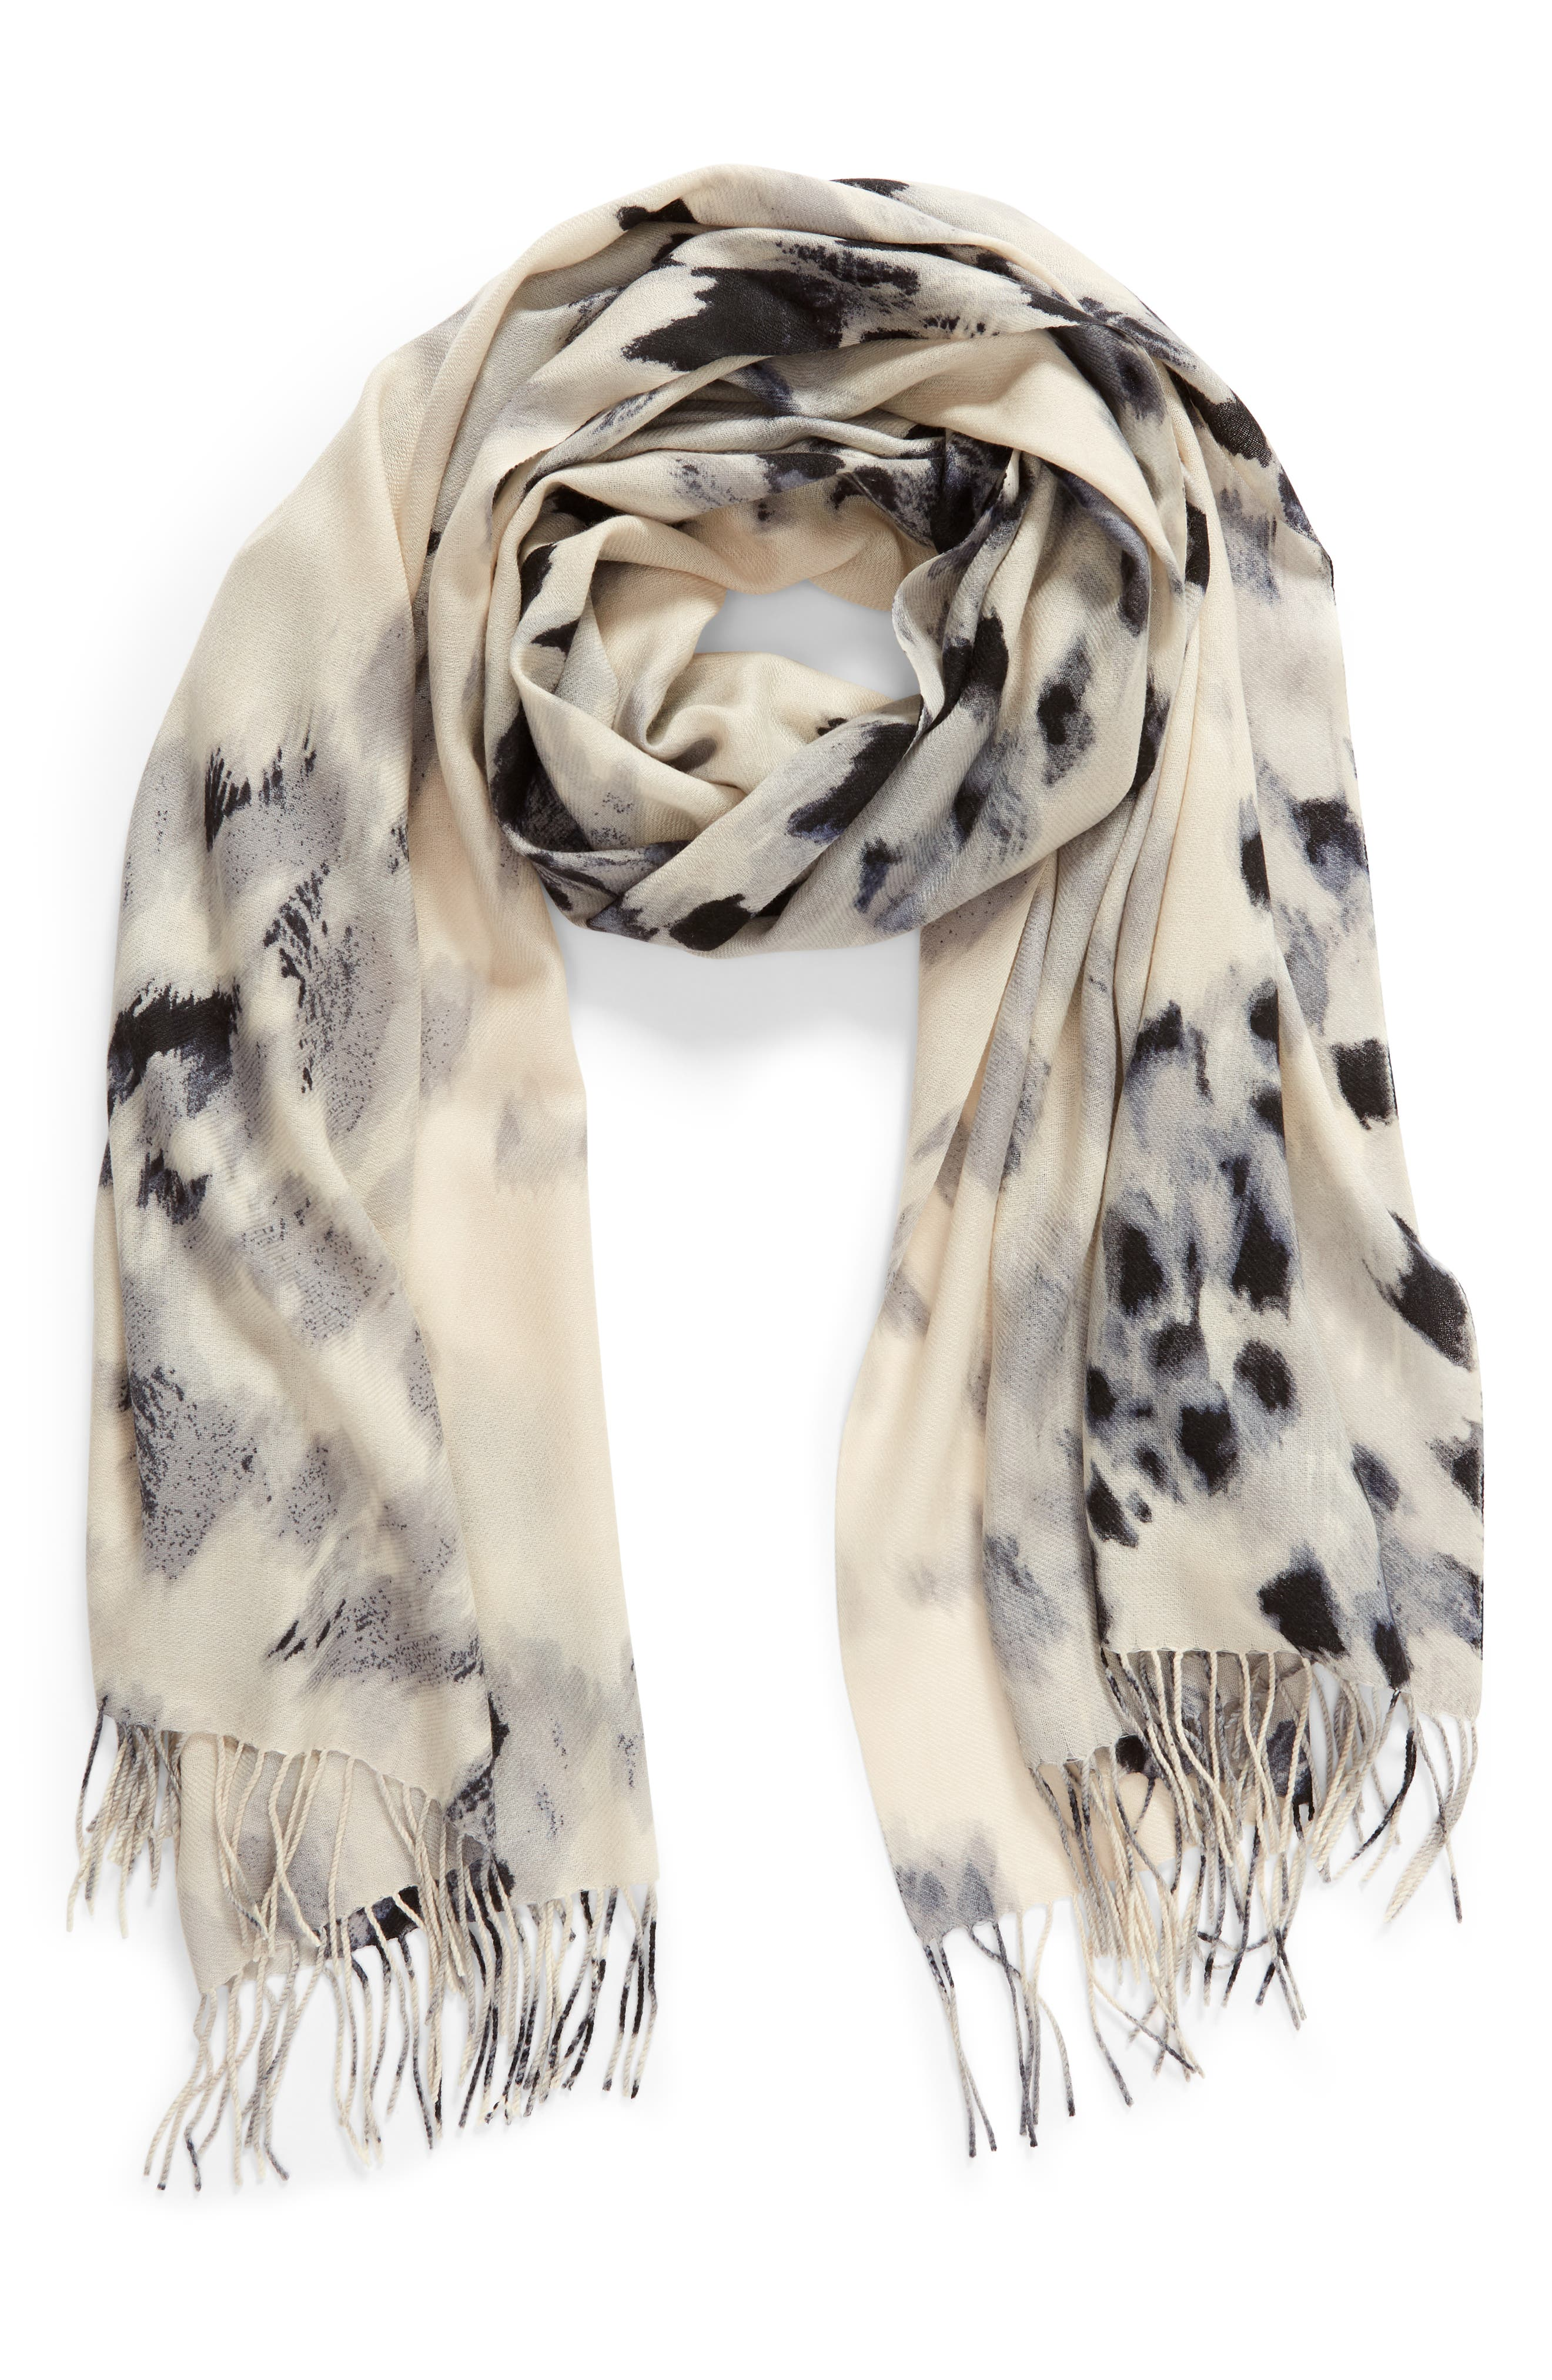 Tissue Print Wool & Cashmere Wrap Scarf,                             Alternate thumbnail 2, color,                             GREY FEATHERED CAT